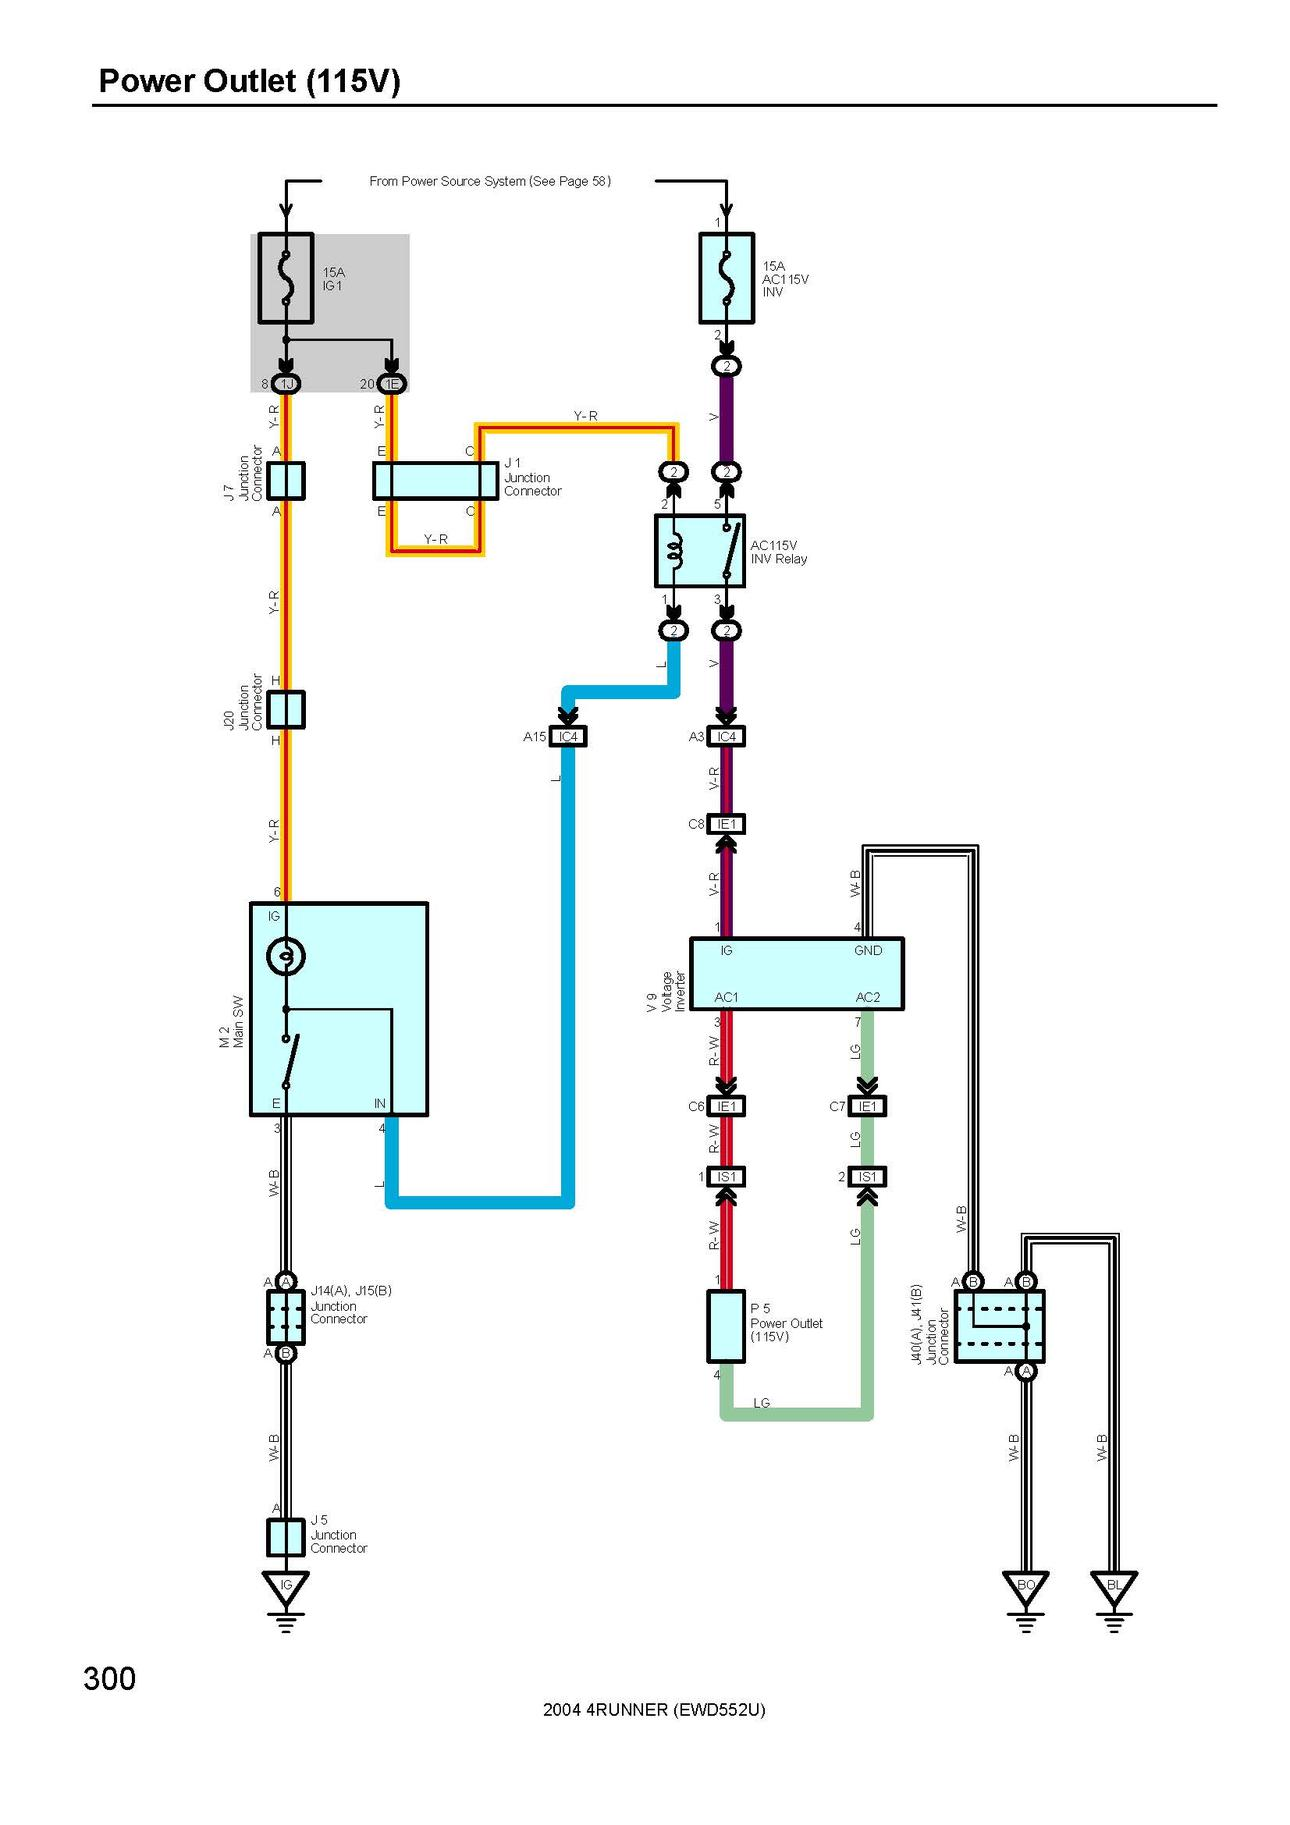 Wiring 115v Ac Plug In Not Lossing Diagram 220v Wire Oem Inverter Pin Out Toyota 4runner Forum Rh Org